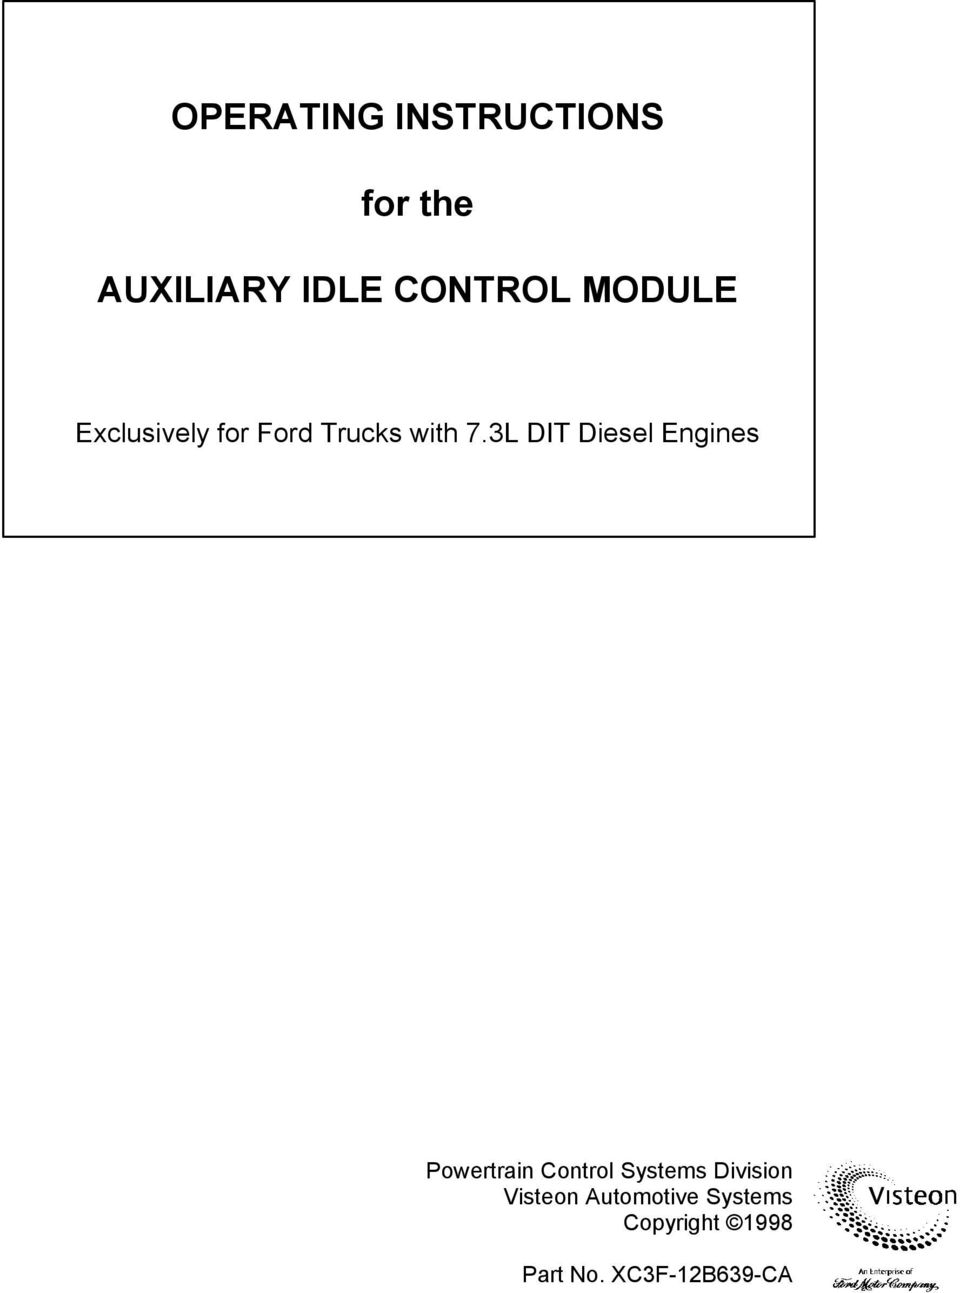 Operating Instructions For The Auxiliary Idle Control Module Pdf Ford E 250 Abs Brake Wiring Diagram 3l Dit Diesel Engines Powertrain Systems